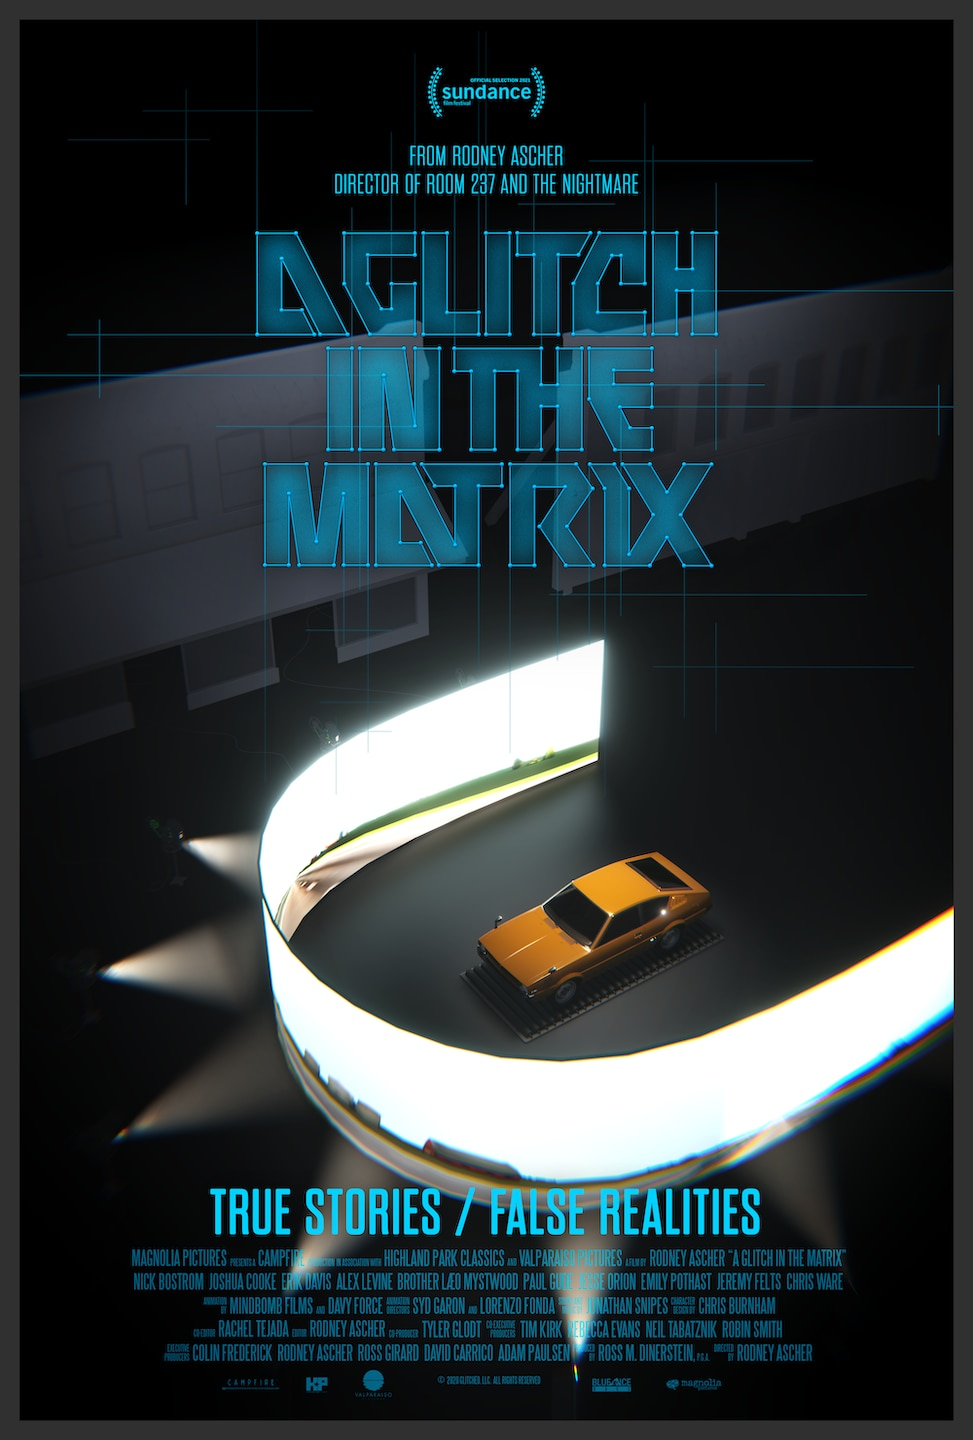 """A Glitch in the Matrix Poster - Sundance 2021: A GLITCH IN THE MATRIX Review - New Doc Asks """"Are We Living In A Simulation?"""""""